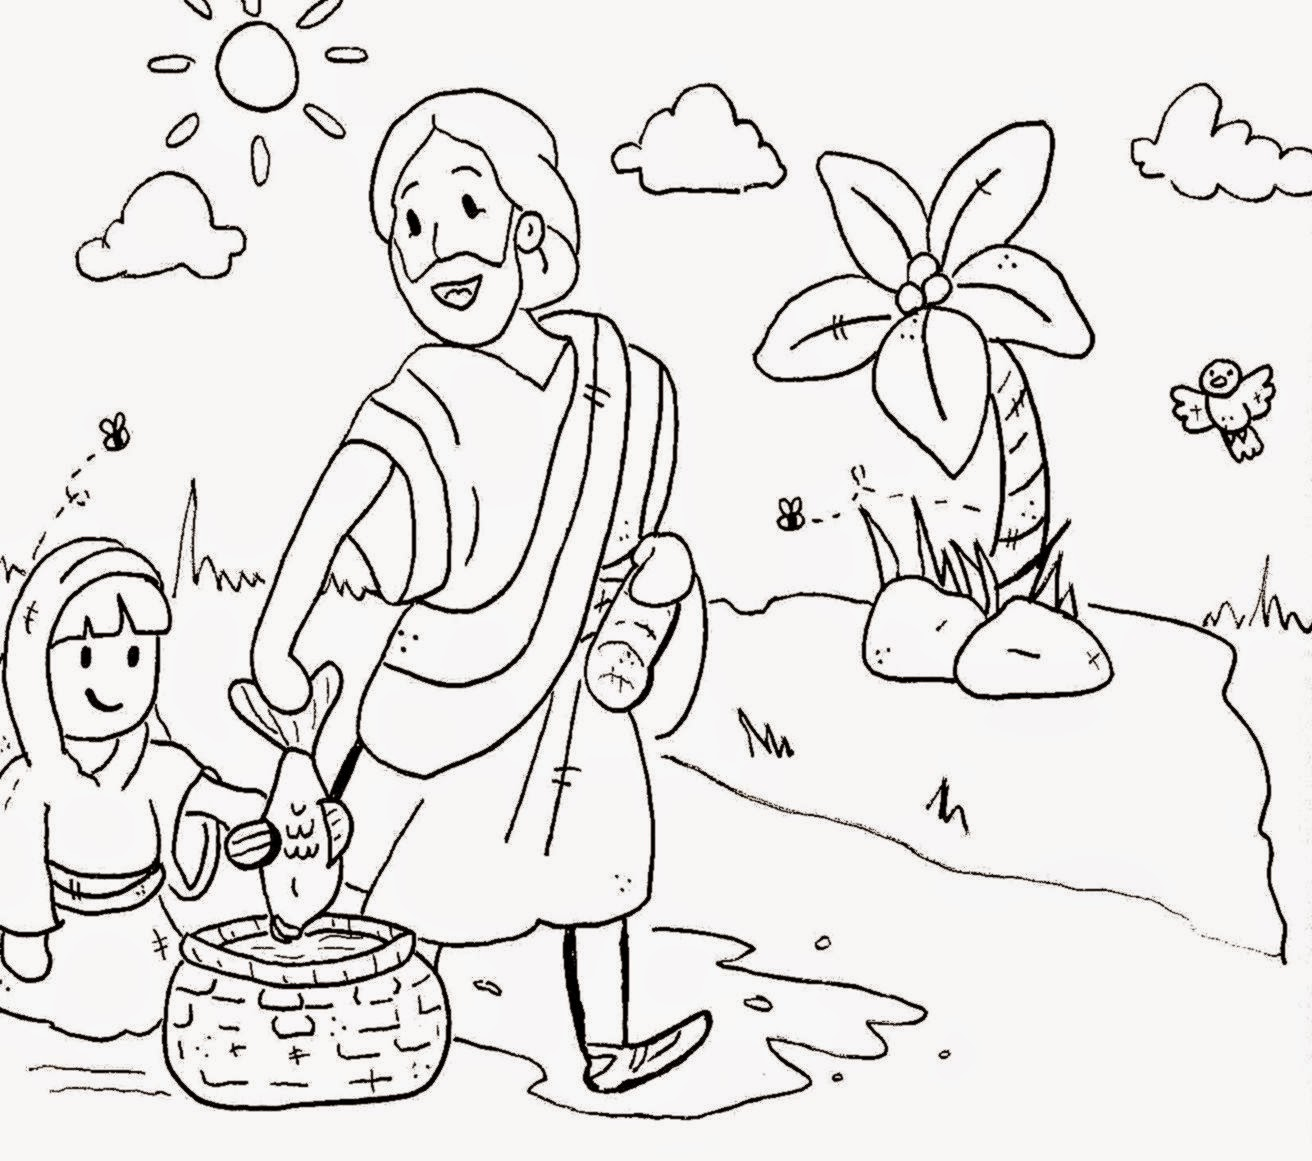 sunday school coloring page - sunday school coloring pages free coloring sheet